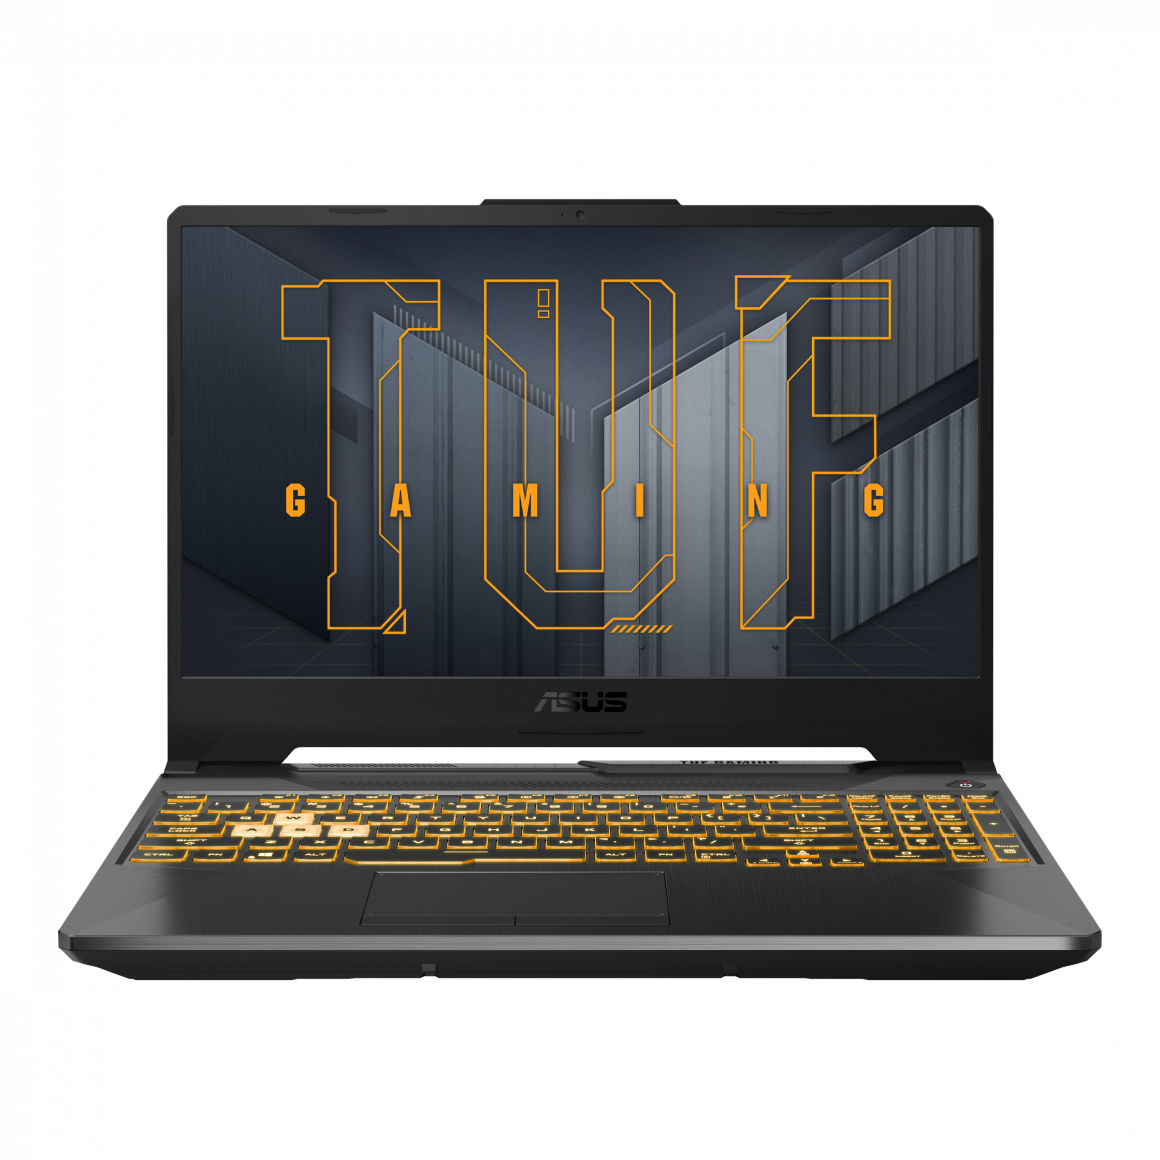 How to choose the best ASUS TUF Gaming Laptop - A15 vs A17 specs